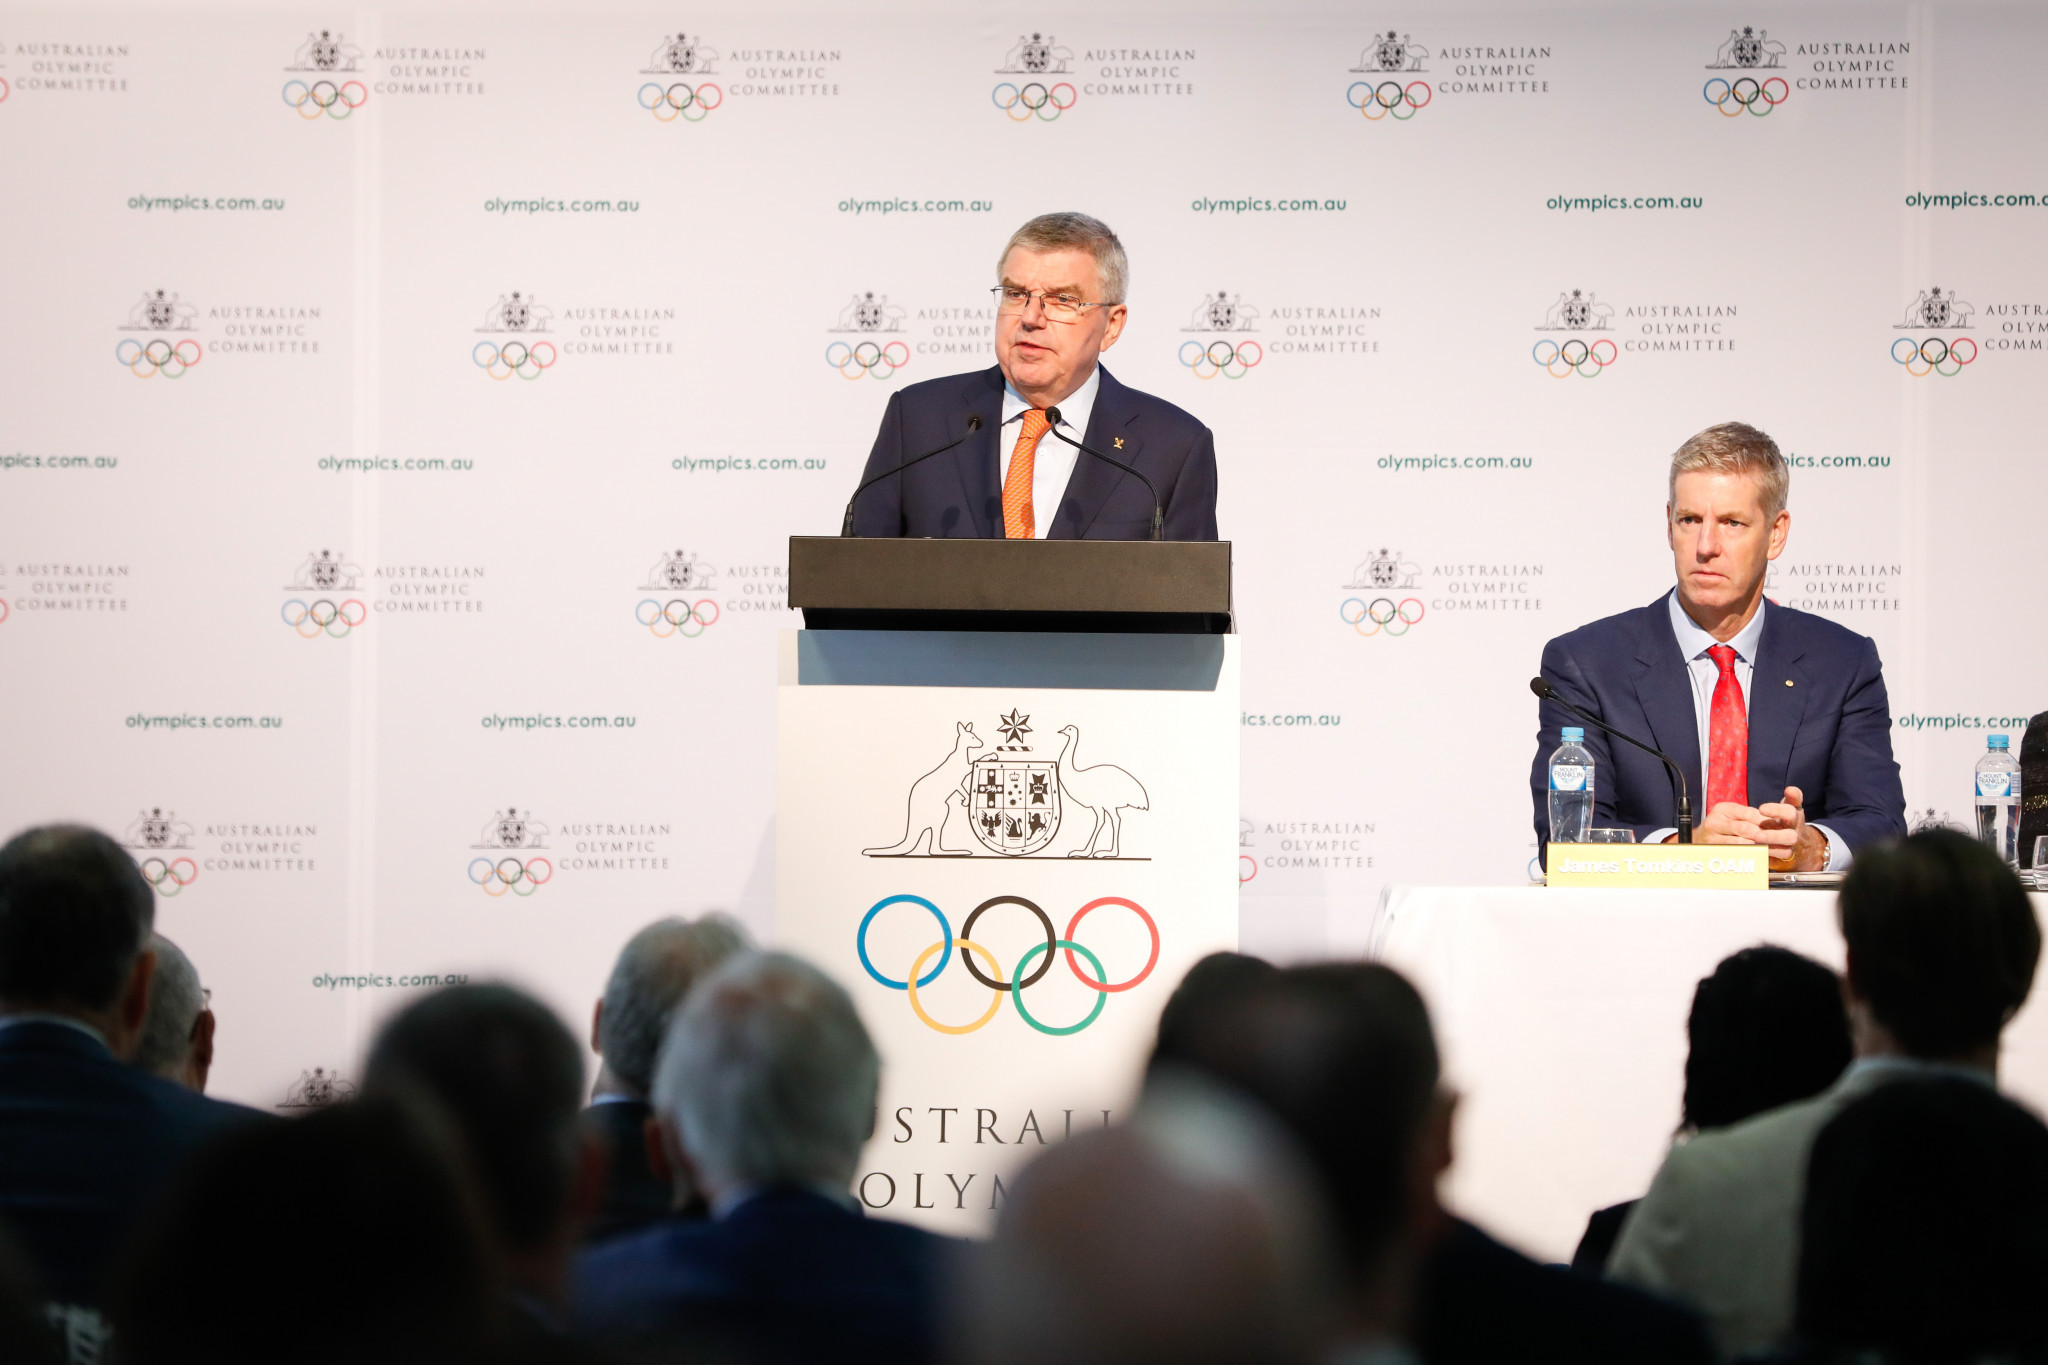 An IOC working group will study the CAS decision on Caster Semenya, its President Thomas Bach revealed while attending the Australian Olympic Committee Annual General Meeting in Sydney ©Getty Images